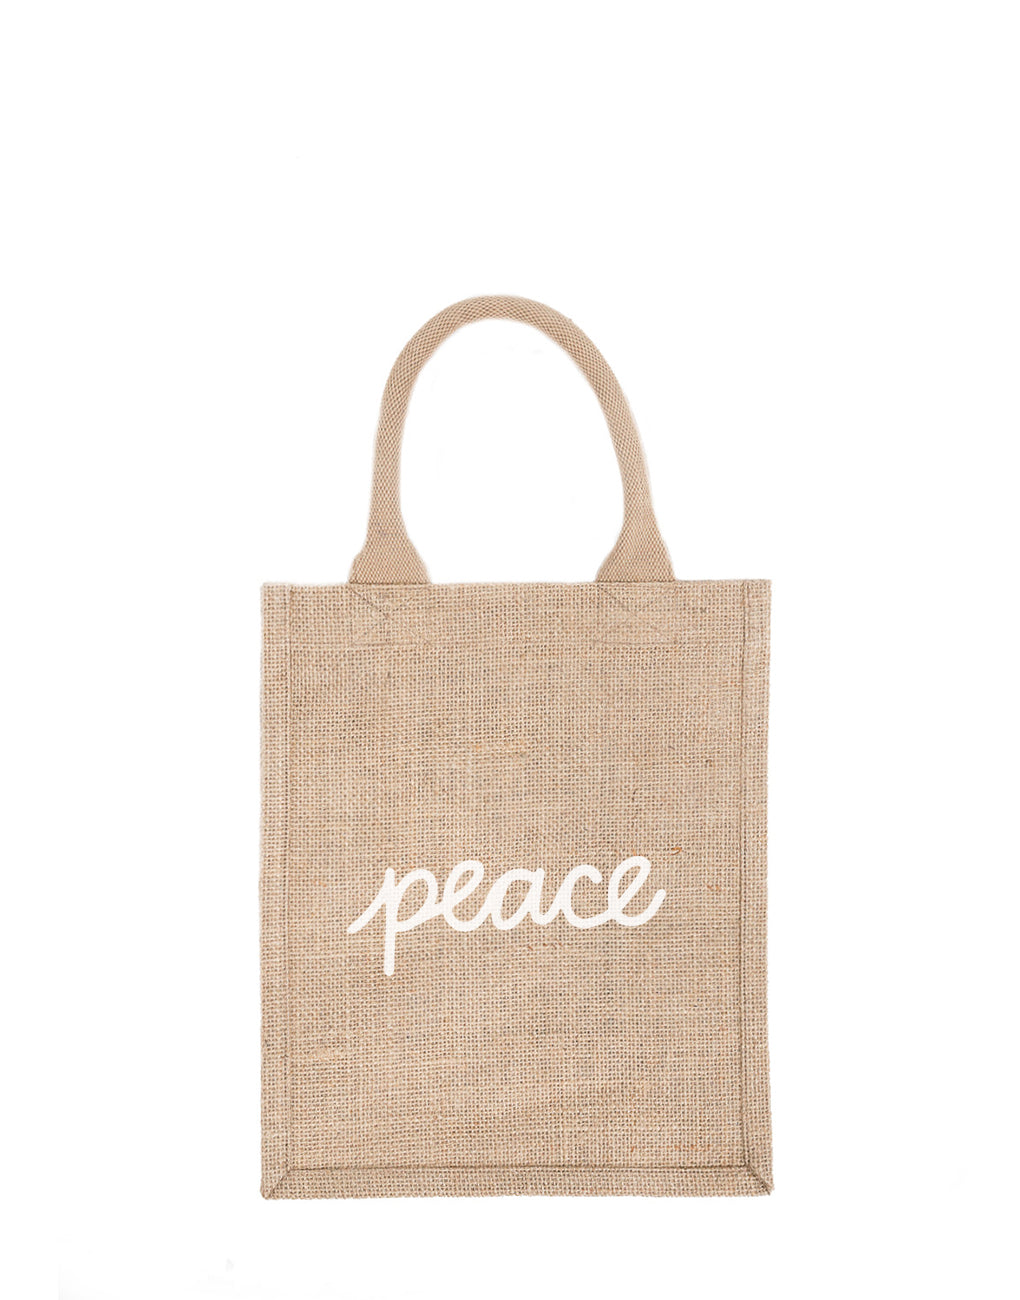 Medium Peace Reusable Gift Tote In White Font | The Little Market